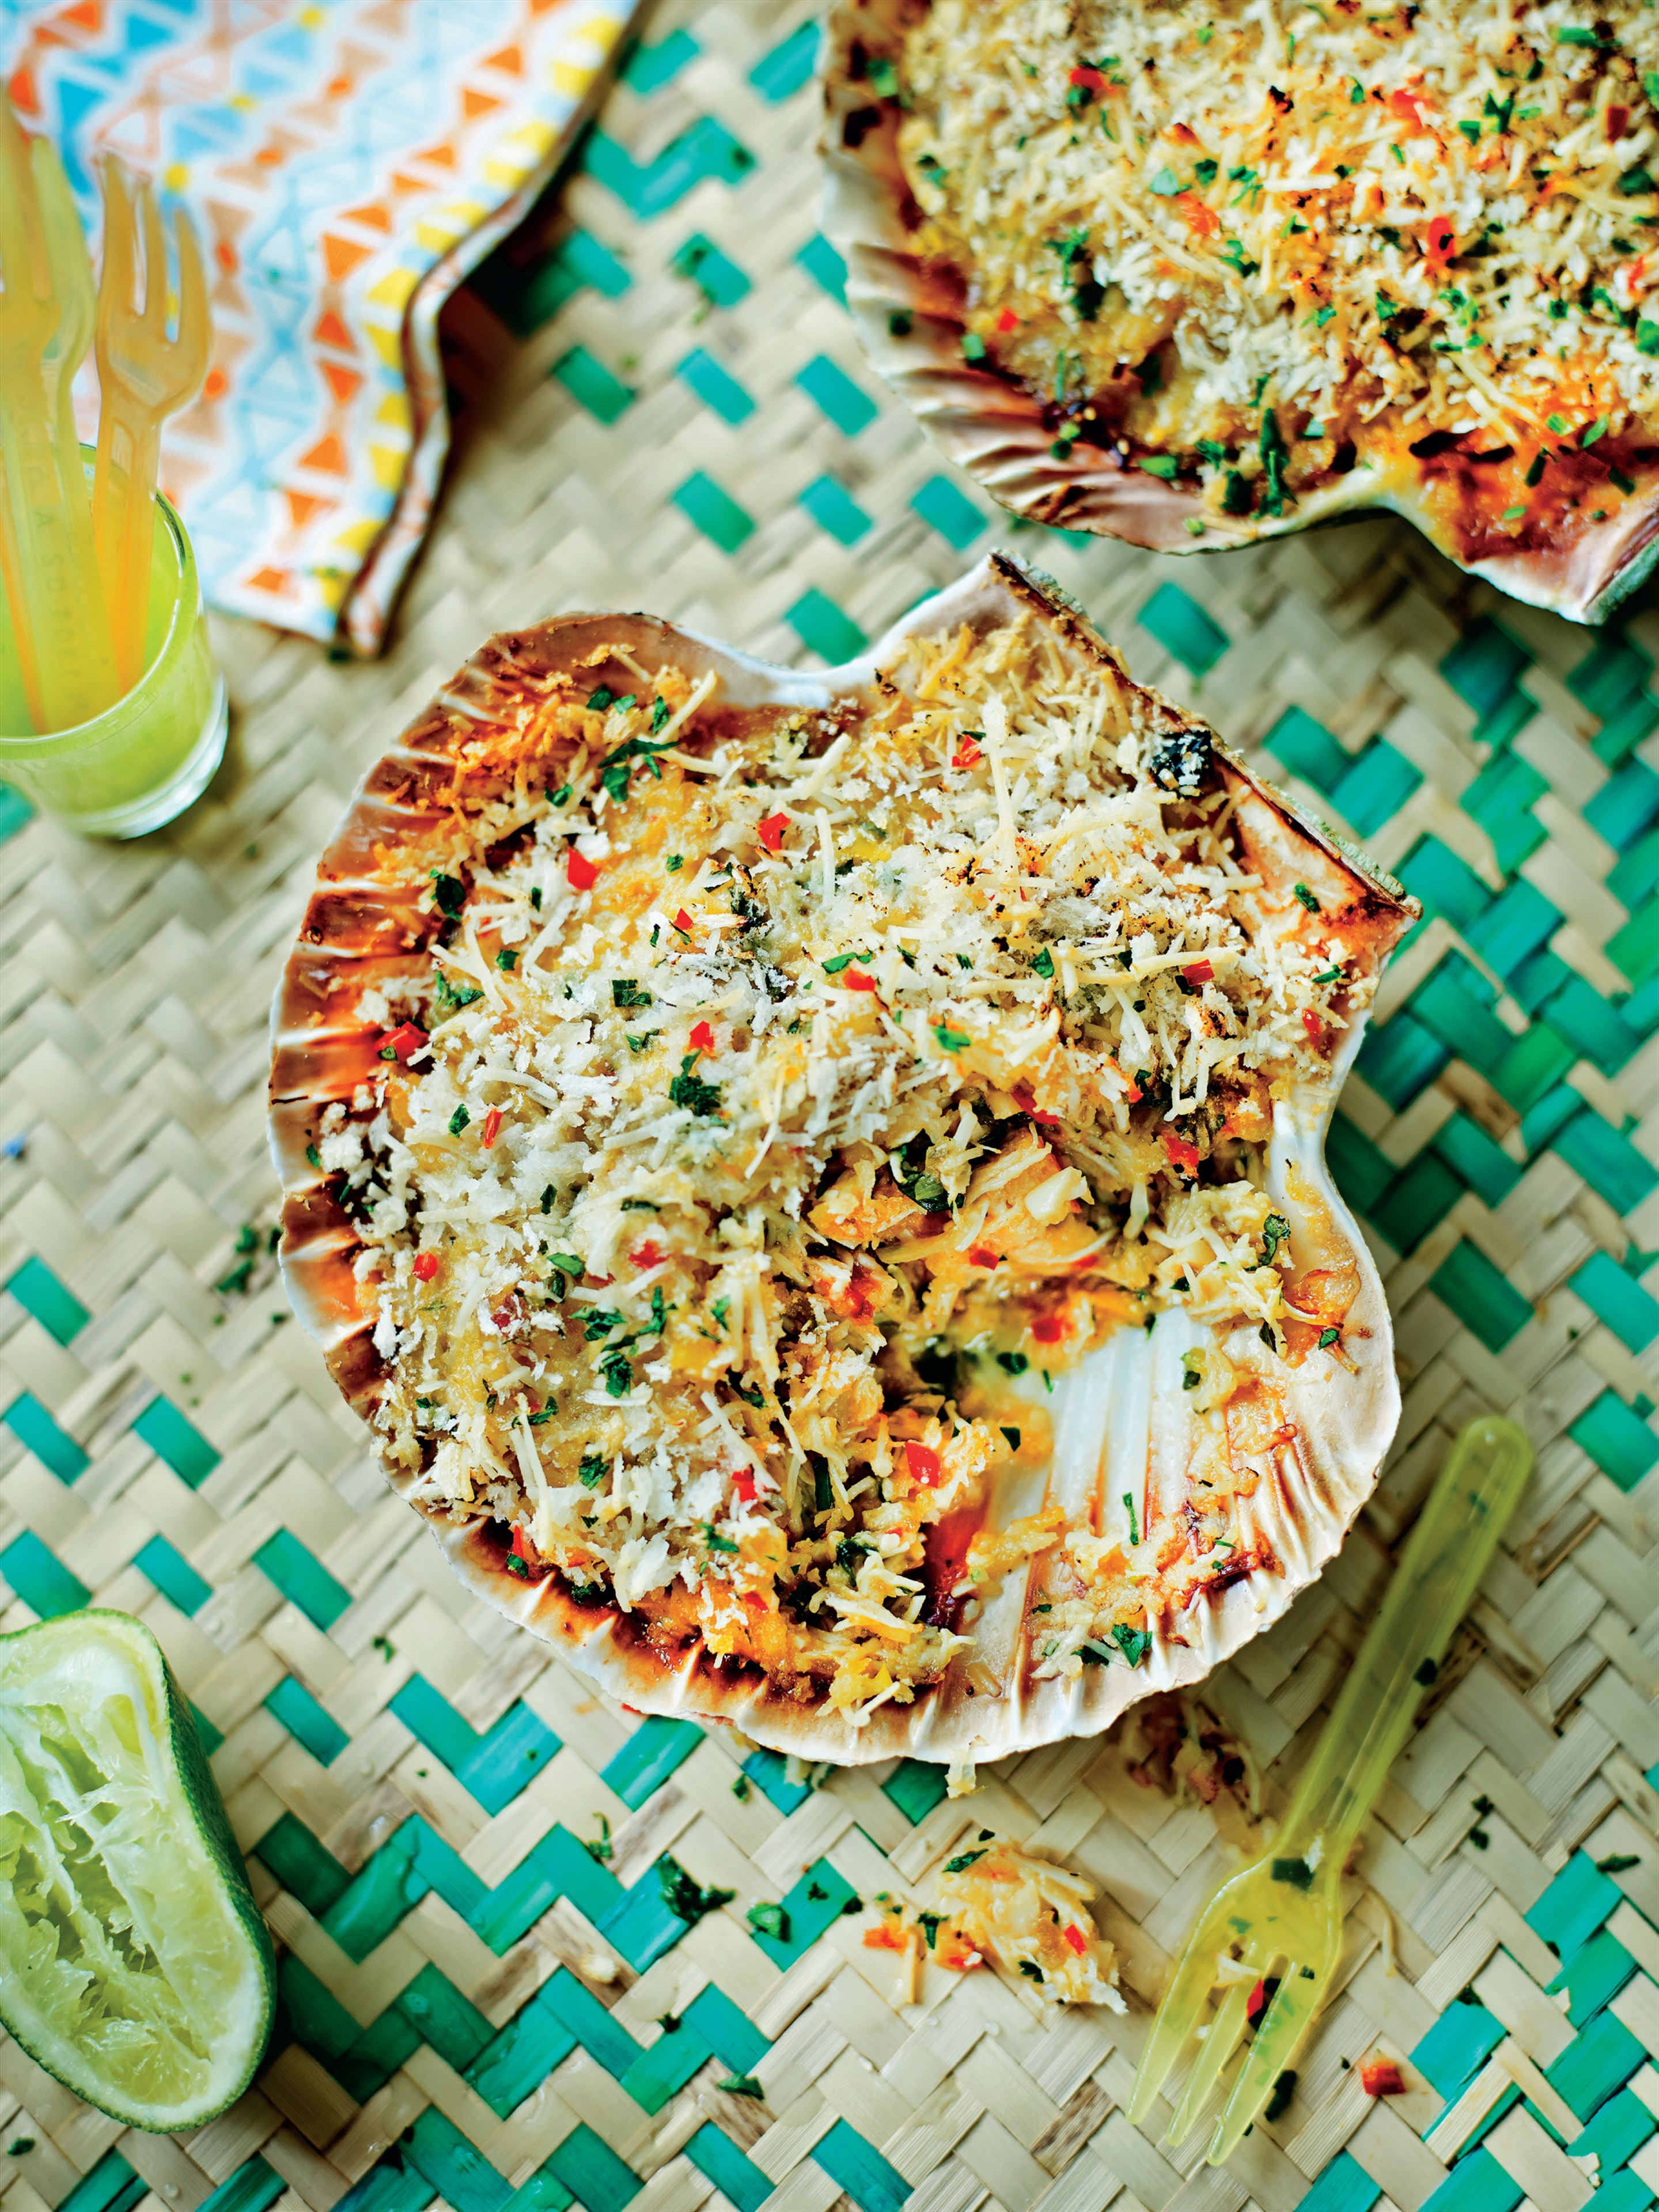 Grilled crab shells